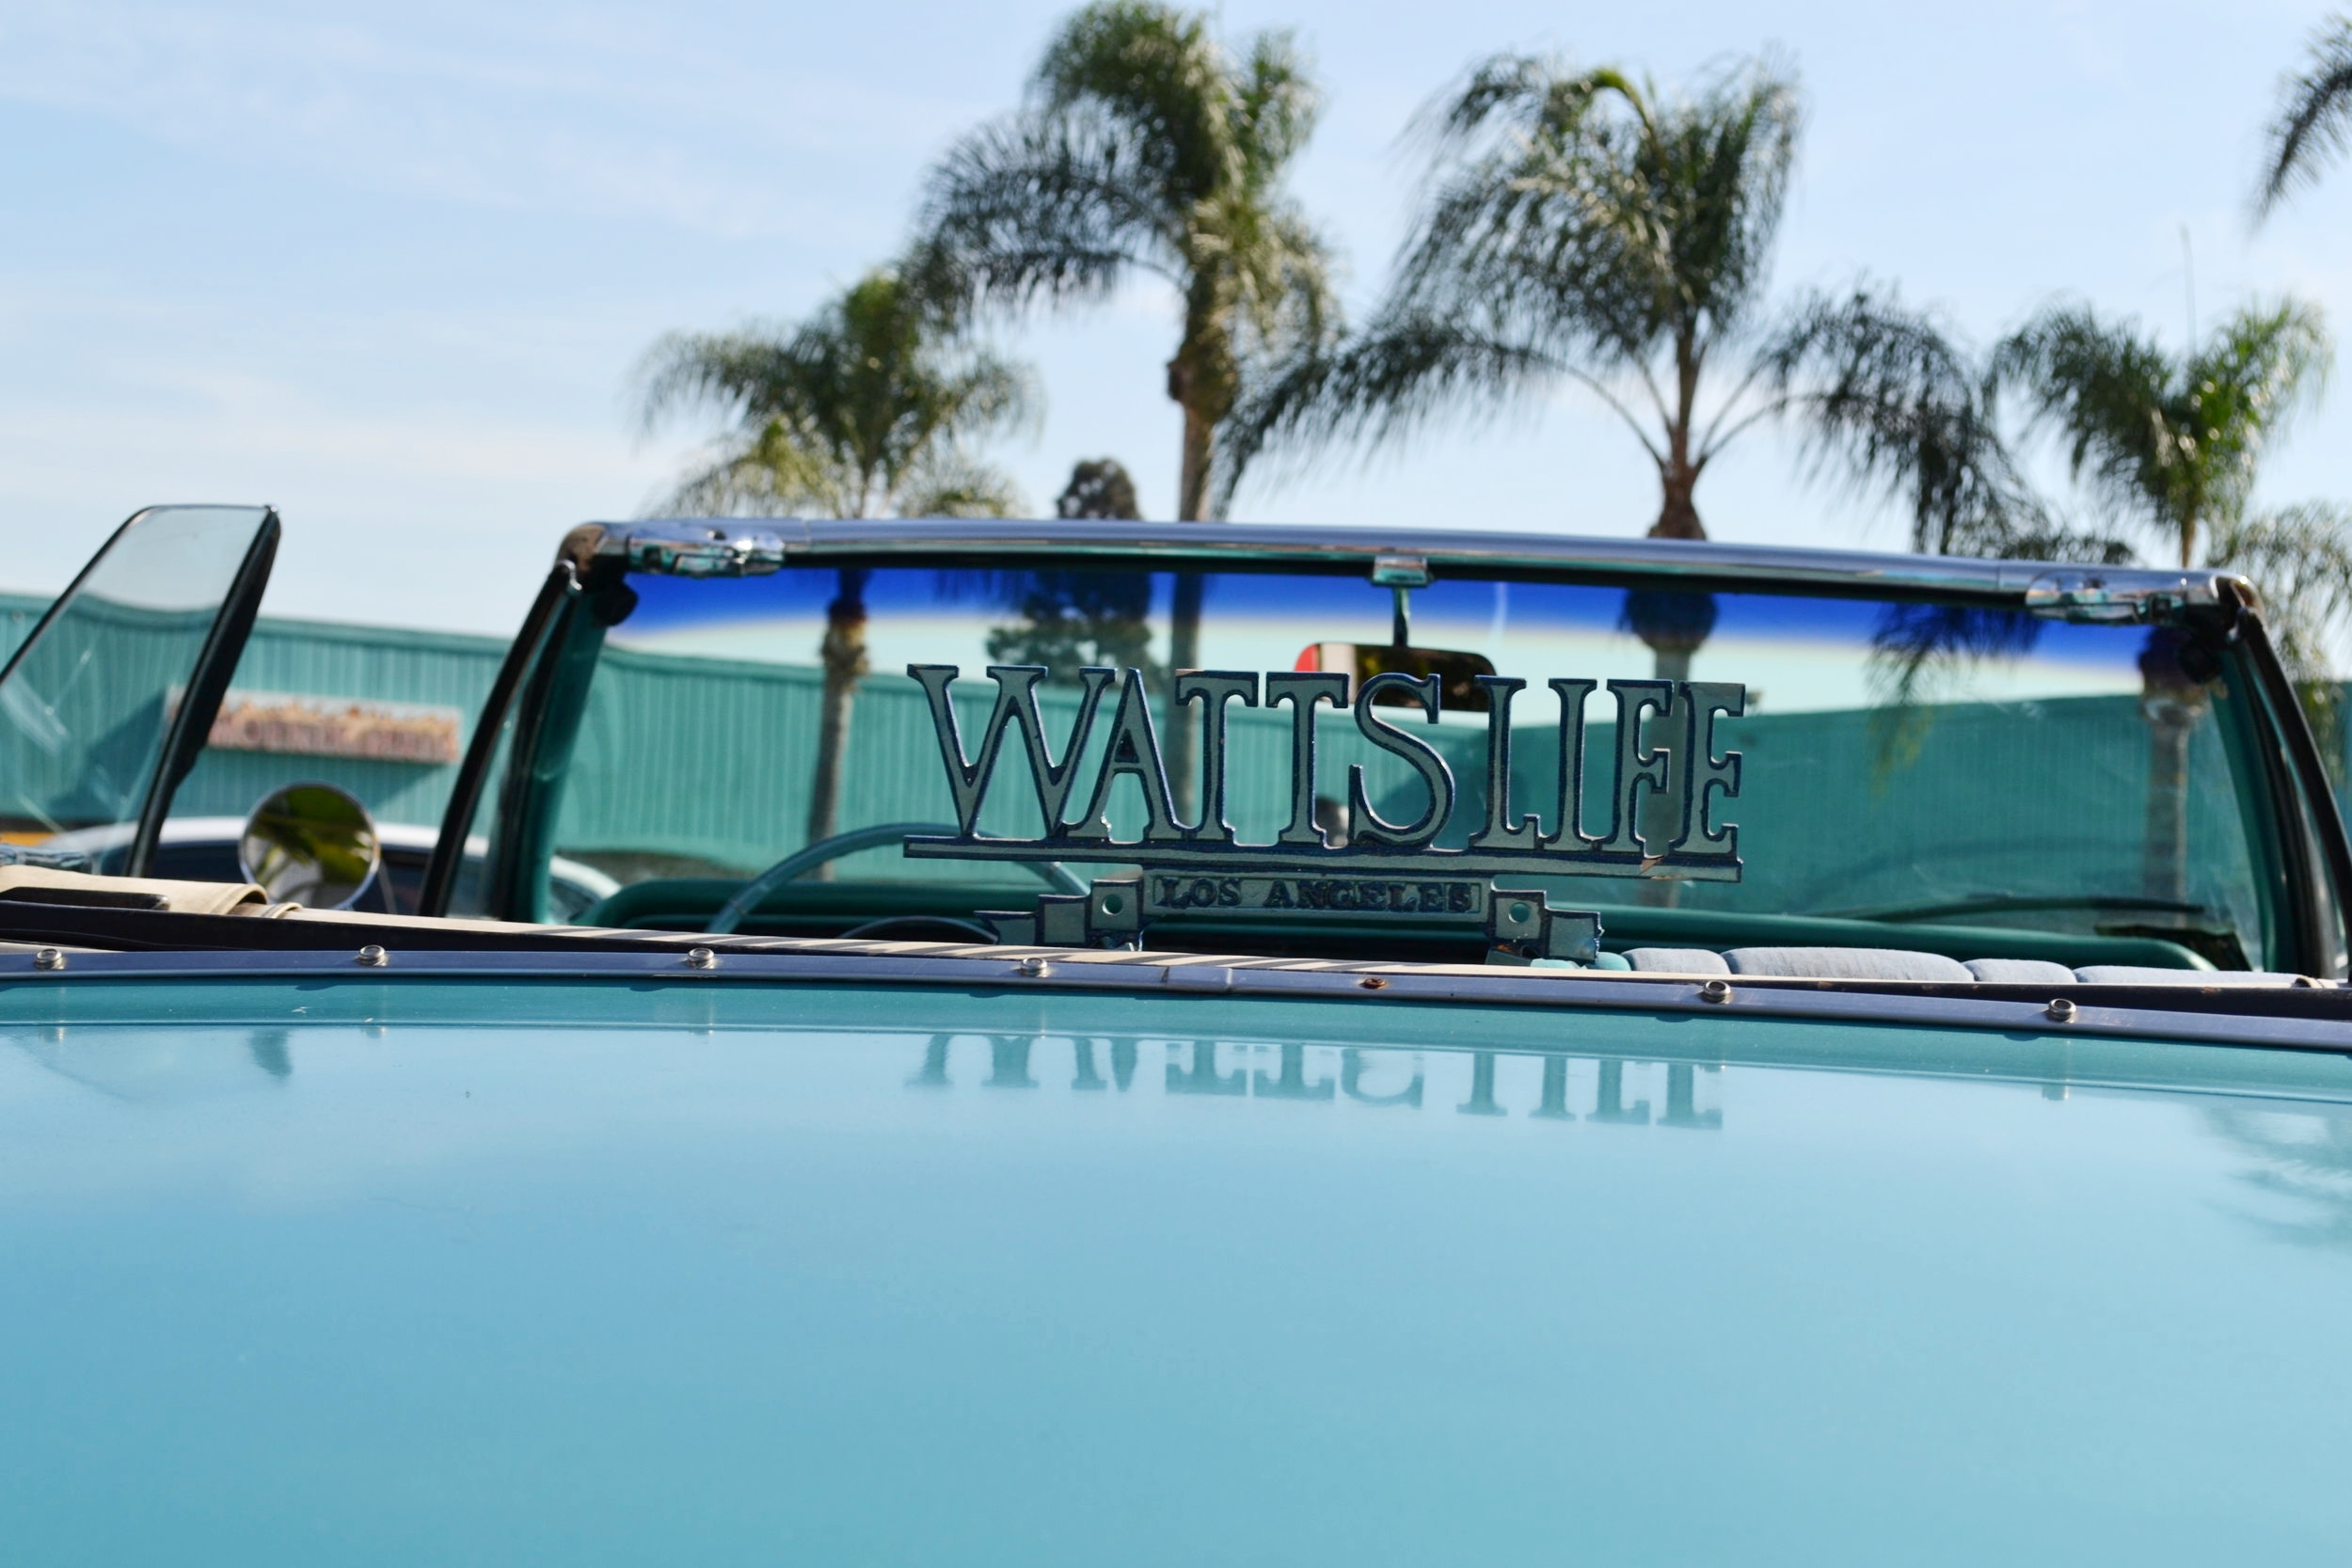 Several Car Clubs participated in the 52nd Annual Watts Christmas Parade on Saturday, December 2, 2017.